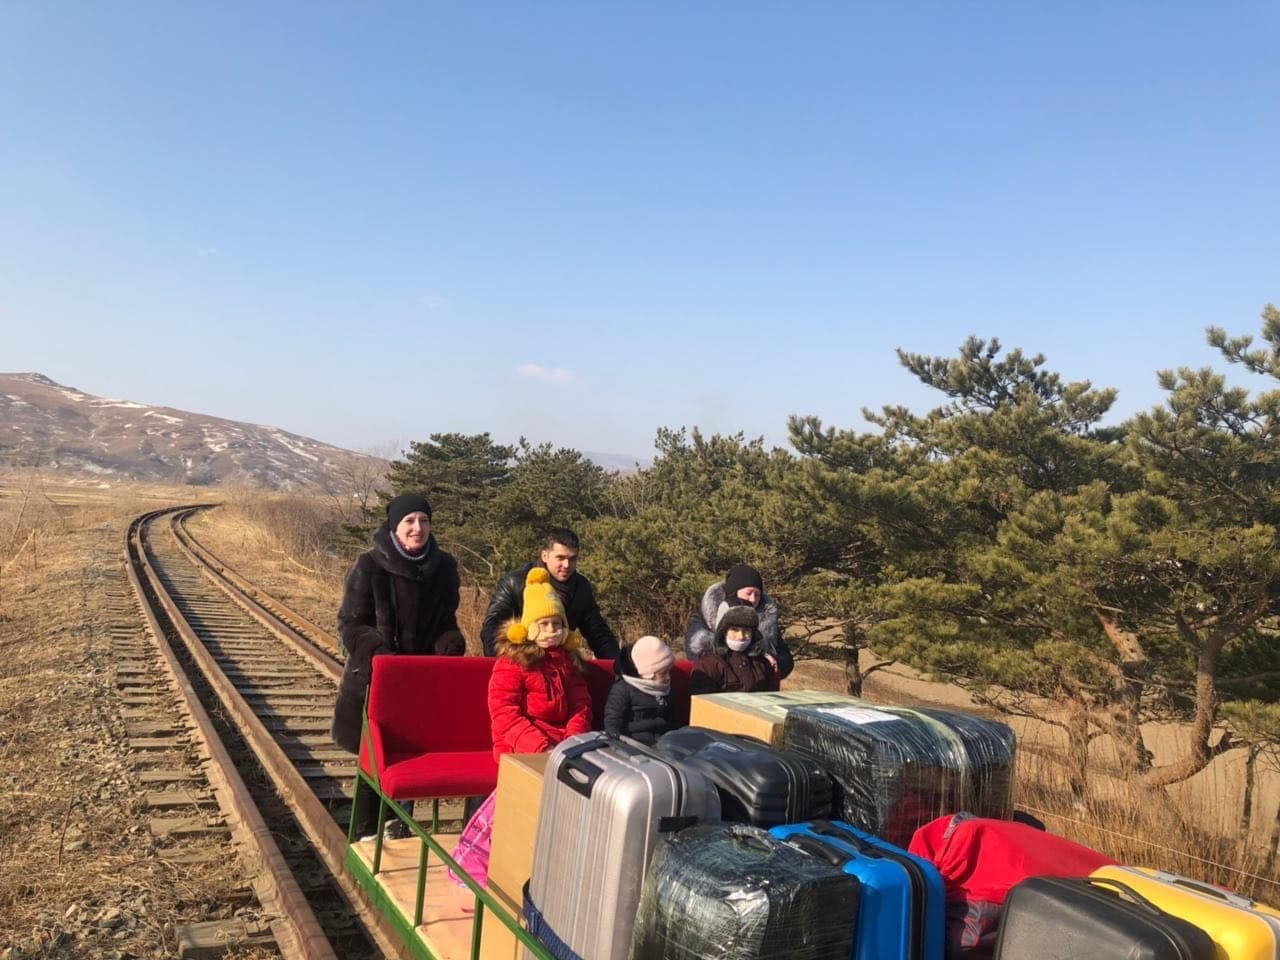 Russian diplomats return from North Korea on rail trolley